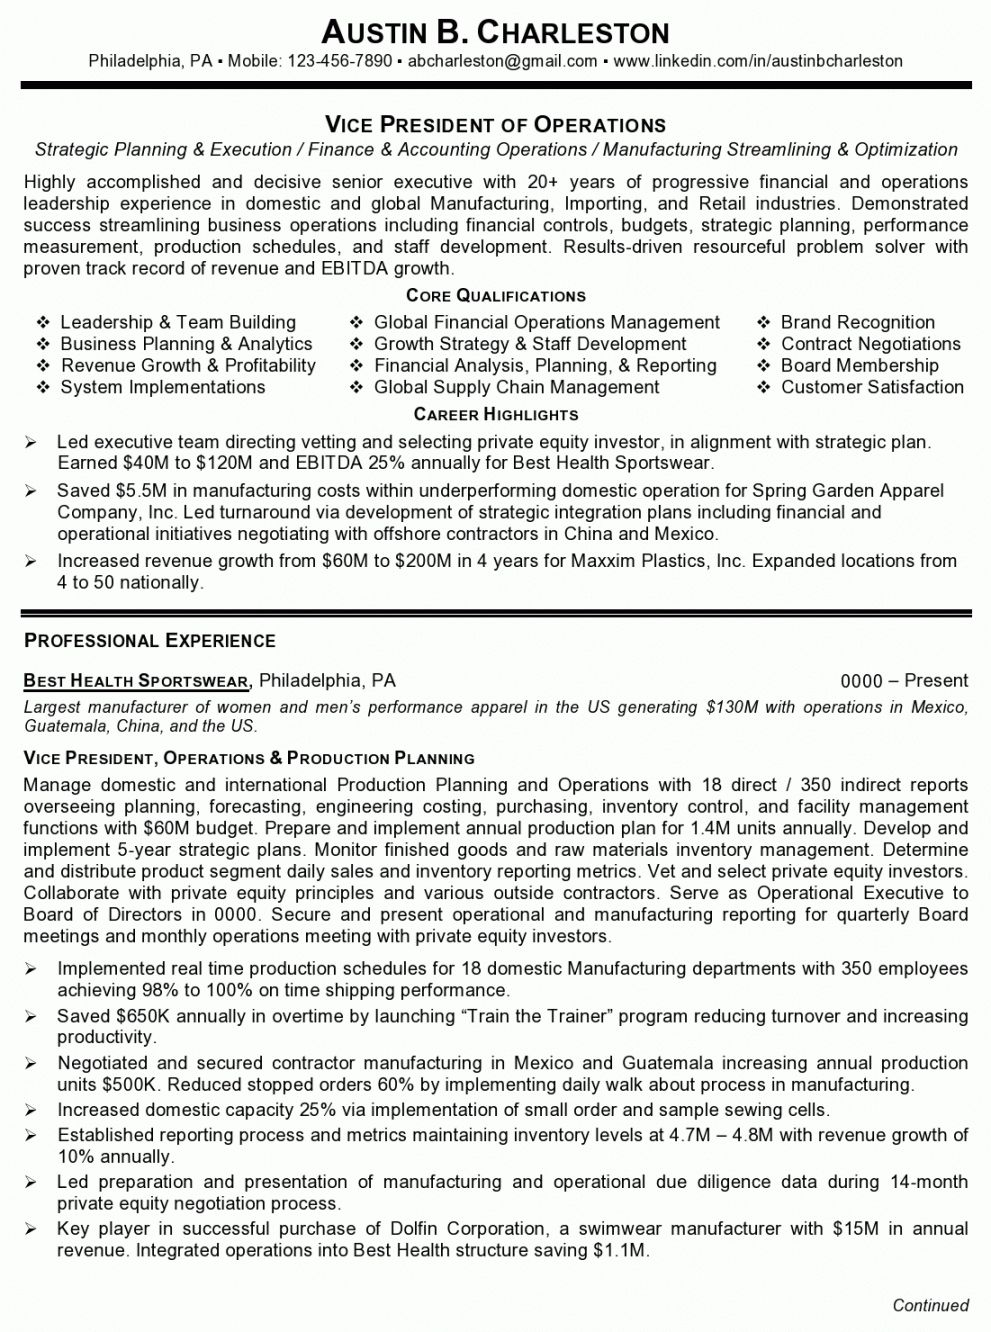 Get Our Example Of Vice President Of Operations Job Description Template For Free Job Description Template Resume Examples Good Objective For Resume